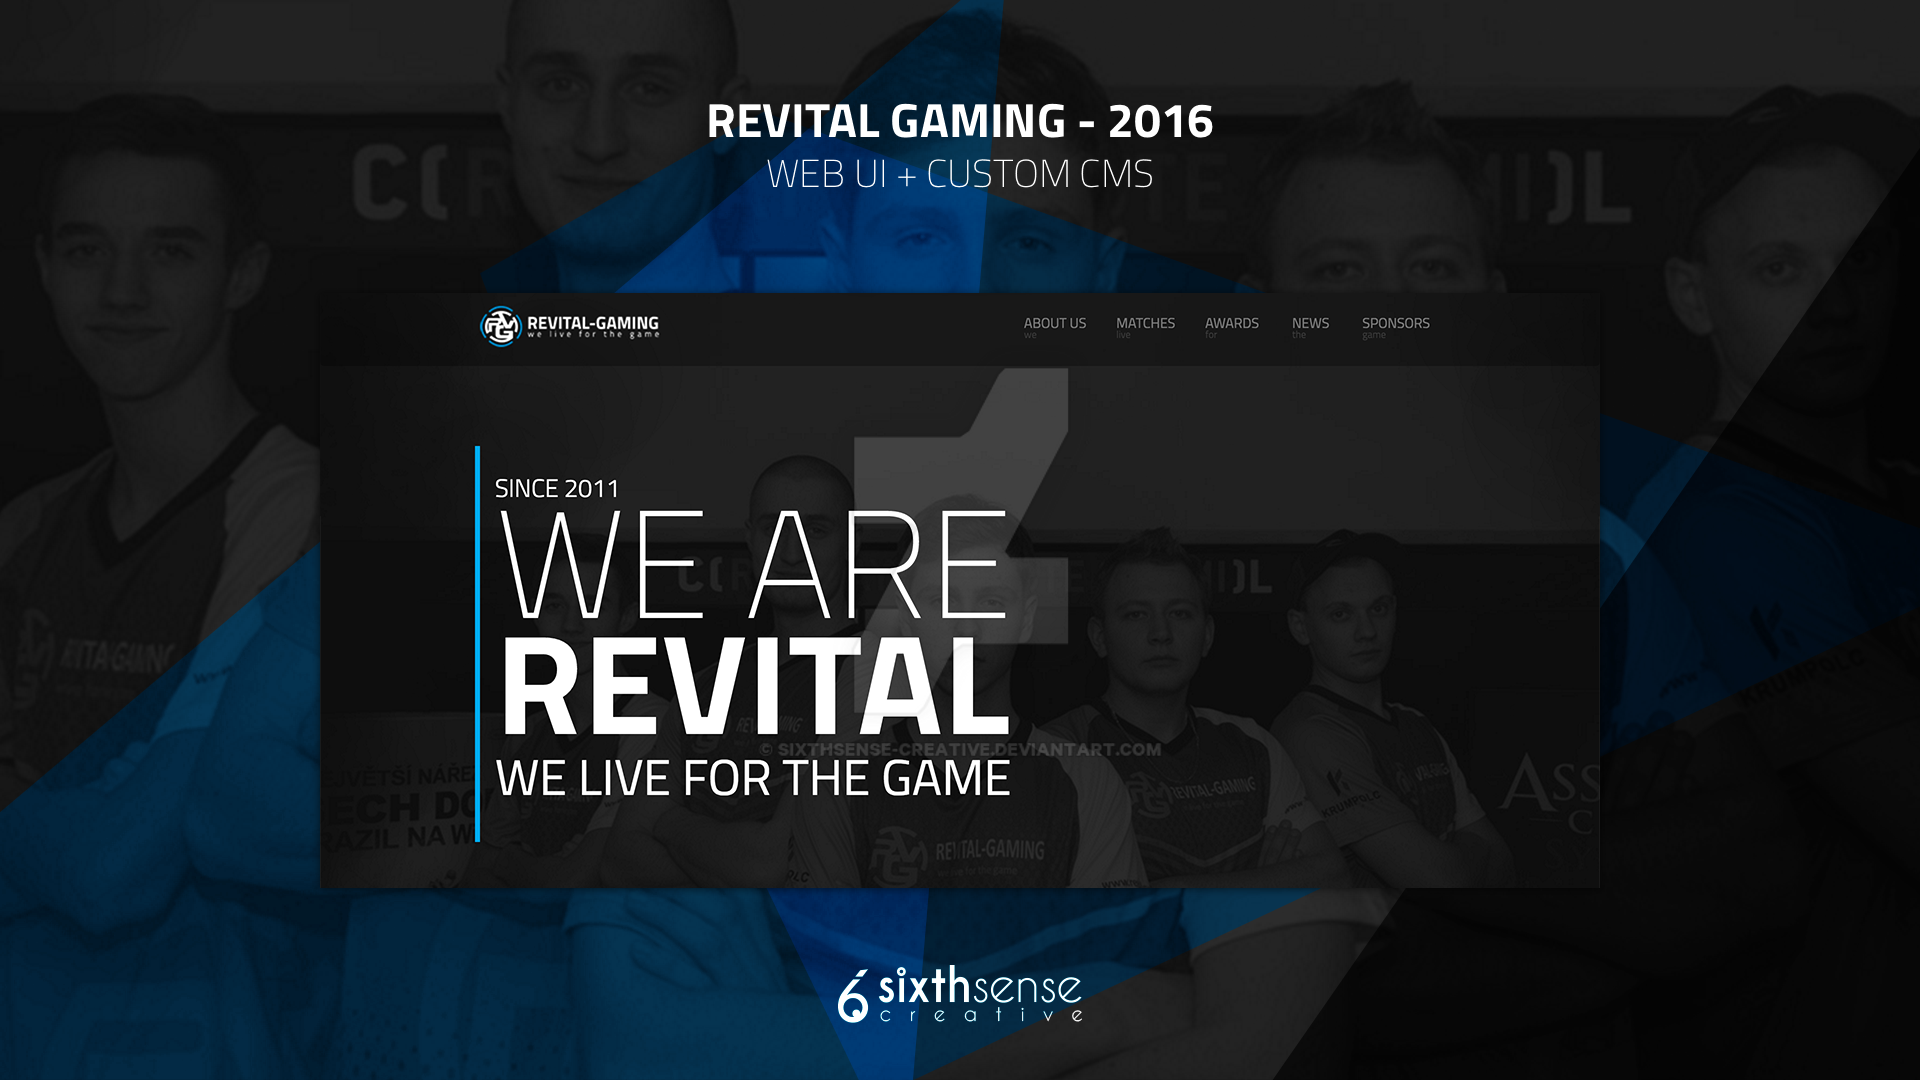 REVITAL-GAMING 2016 - UI / UX and CMS by sixthsense-creative on ...